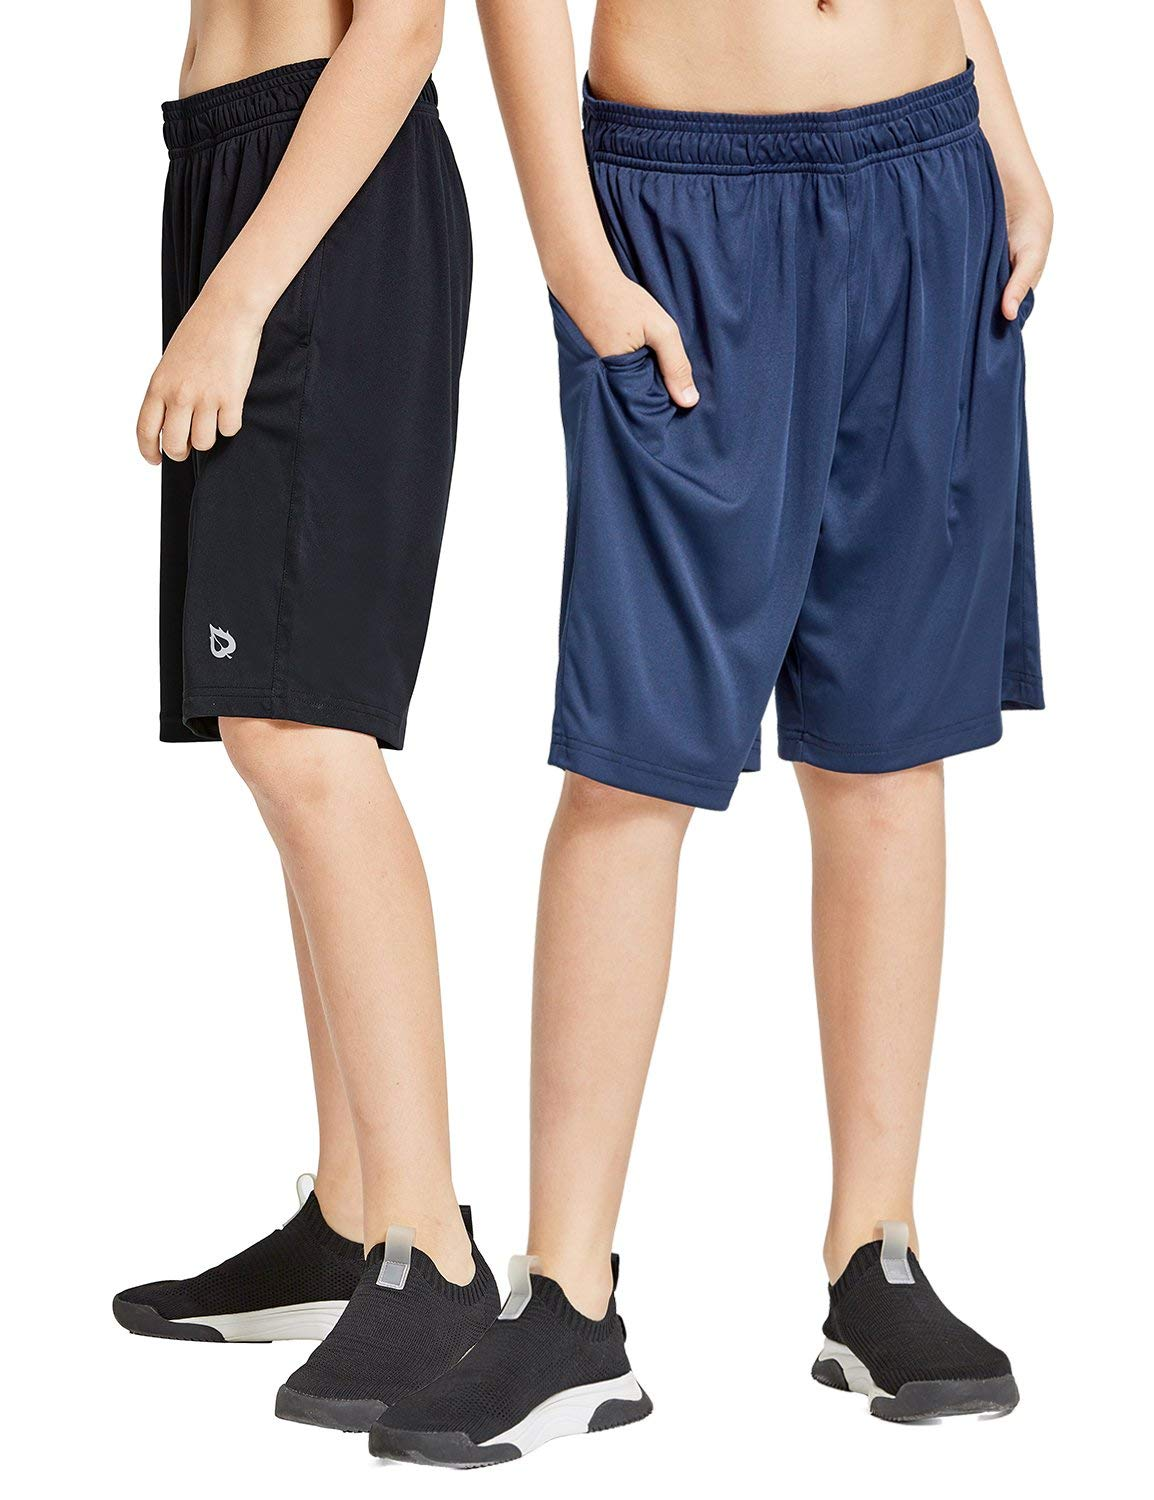 Baleaf Youth Boys' Athletic Running Shorts Pockets Tennis Volleyball Shorts Pack of 2 Black/Navy Size S by Baleaf